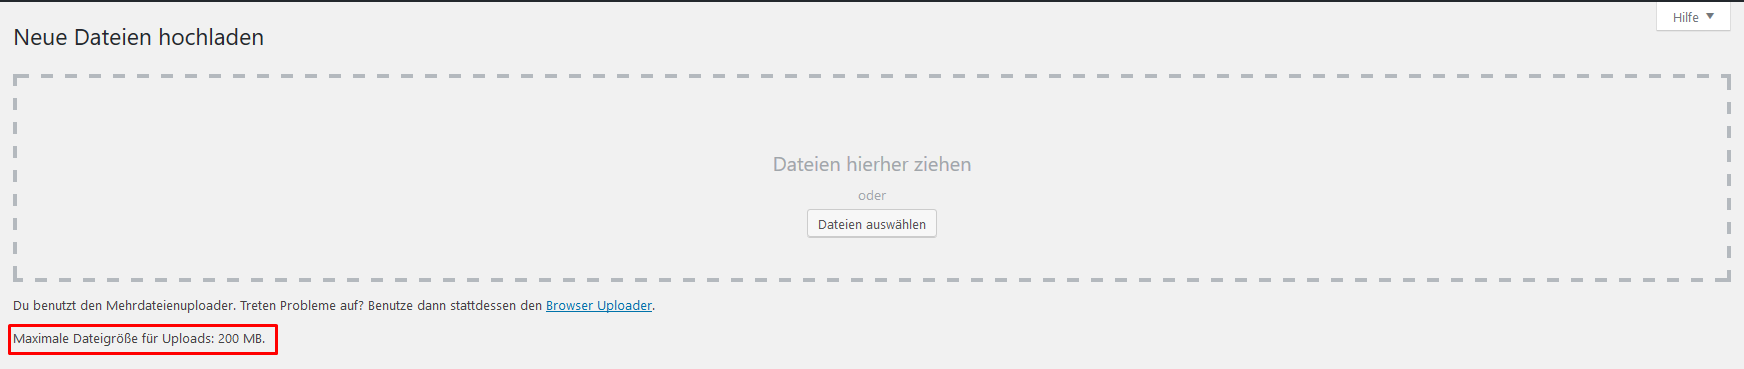 upload-limit erhöhen